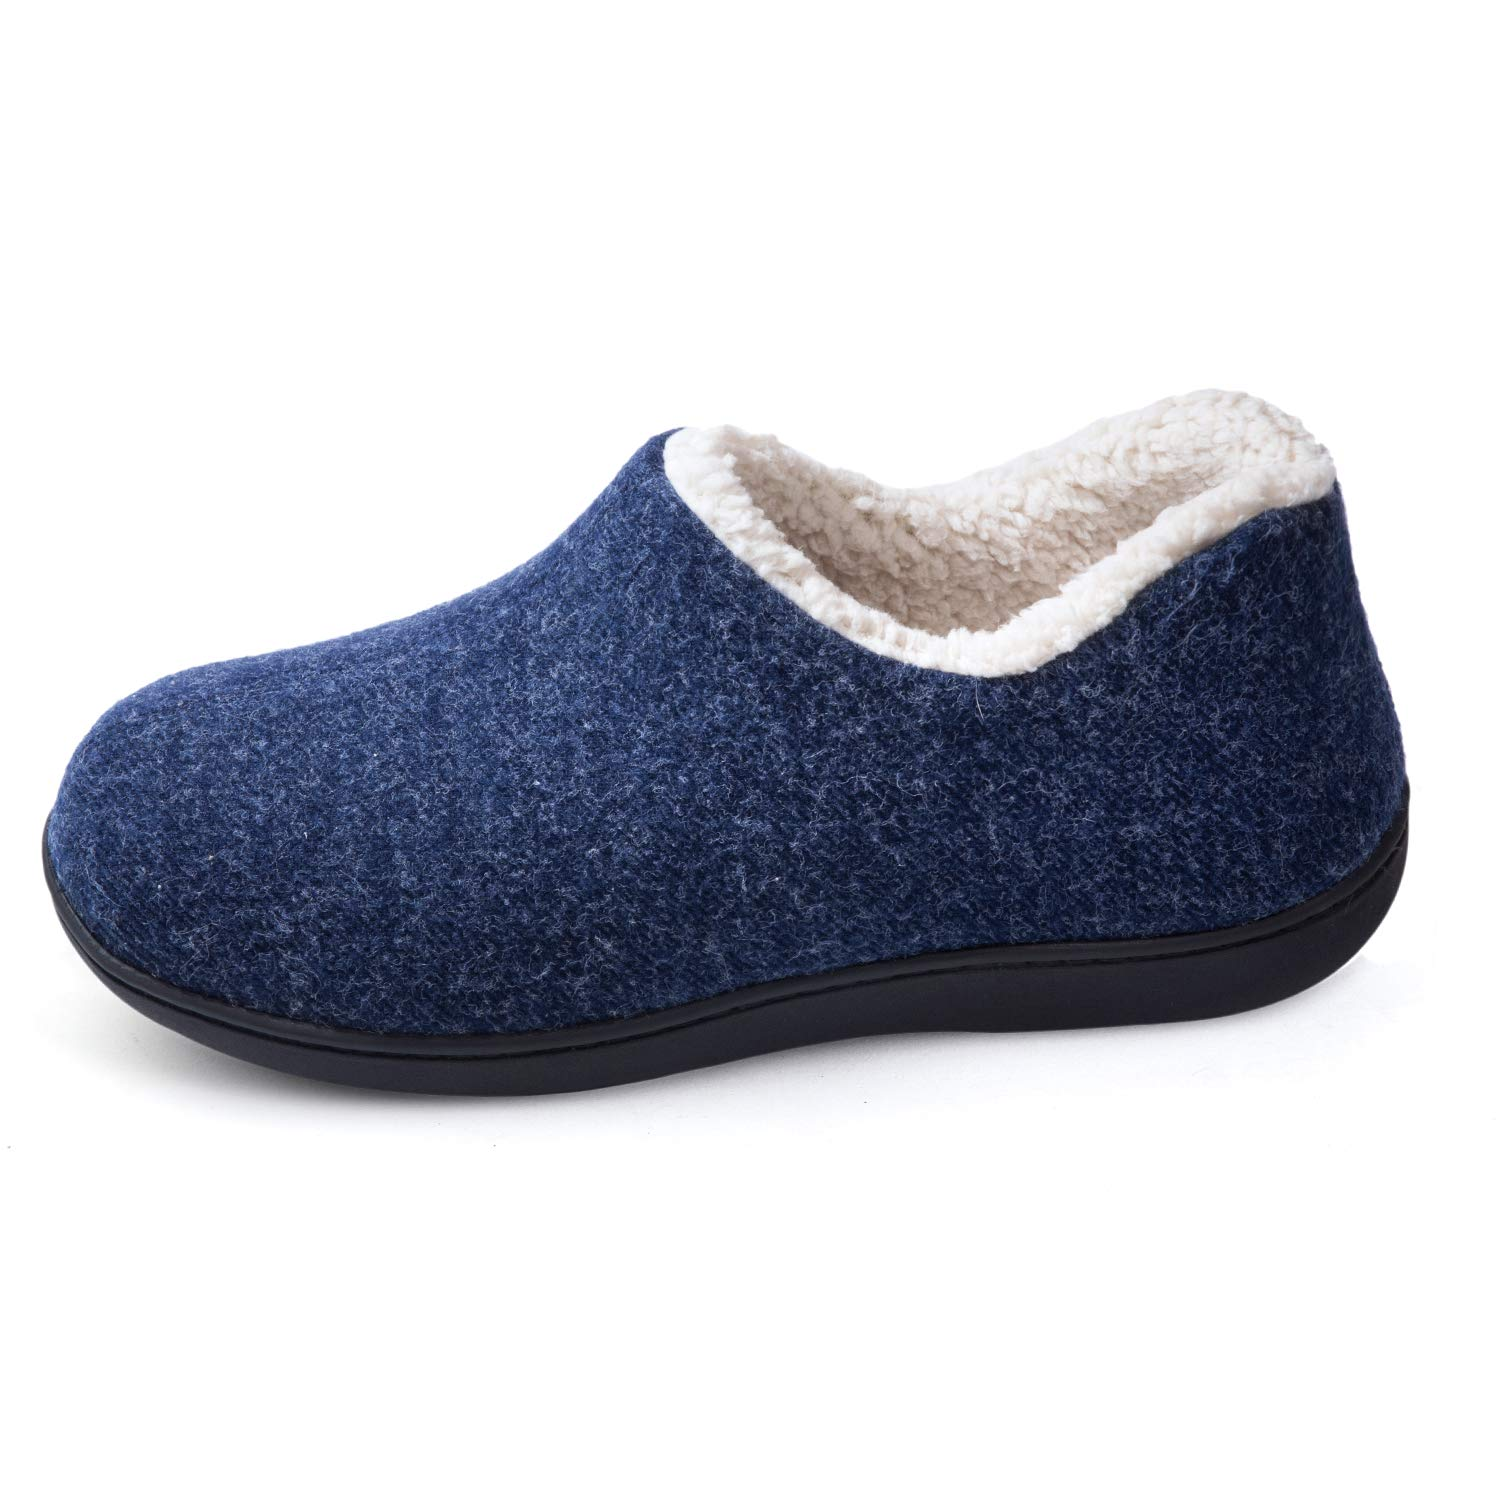 Image of Blue Fleece Lined Women's House Shoes - See More Colors